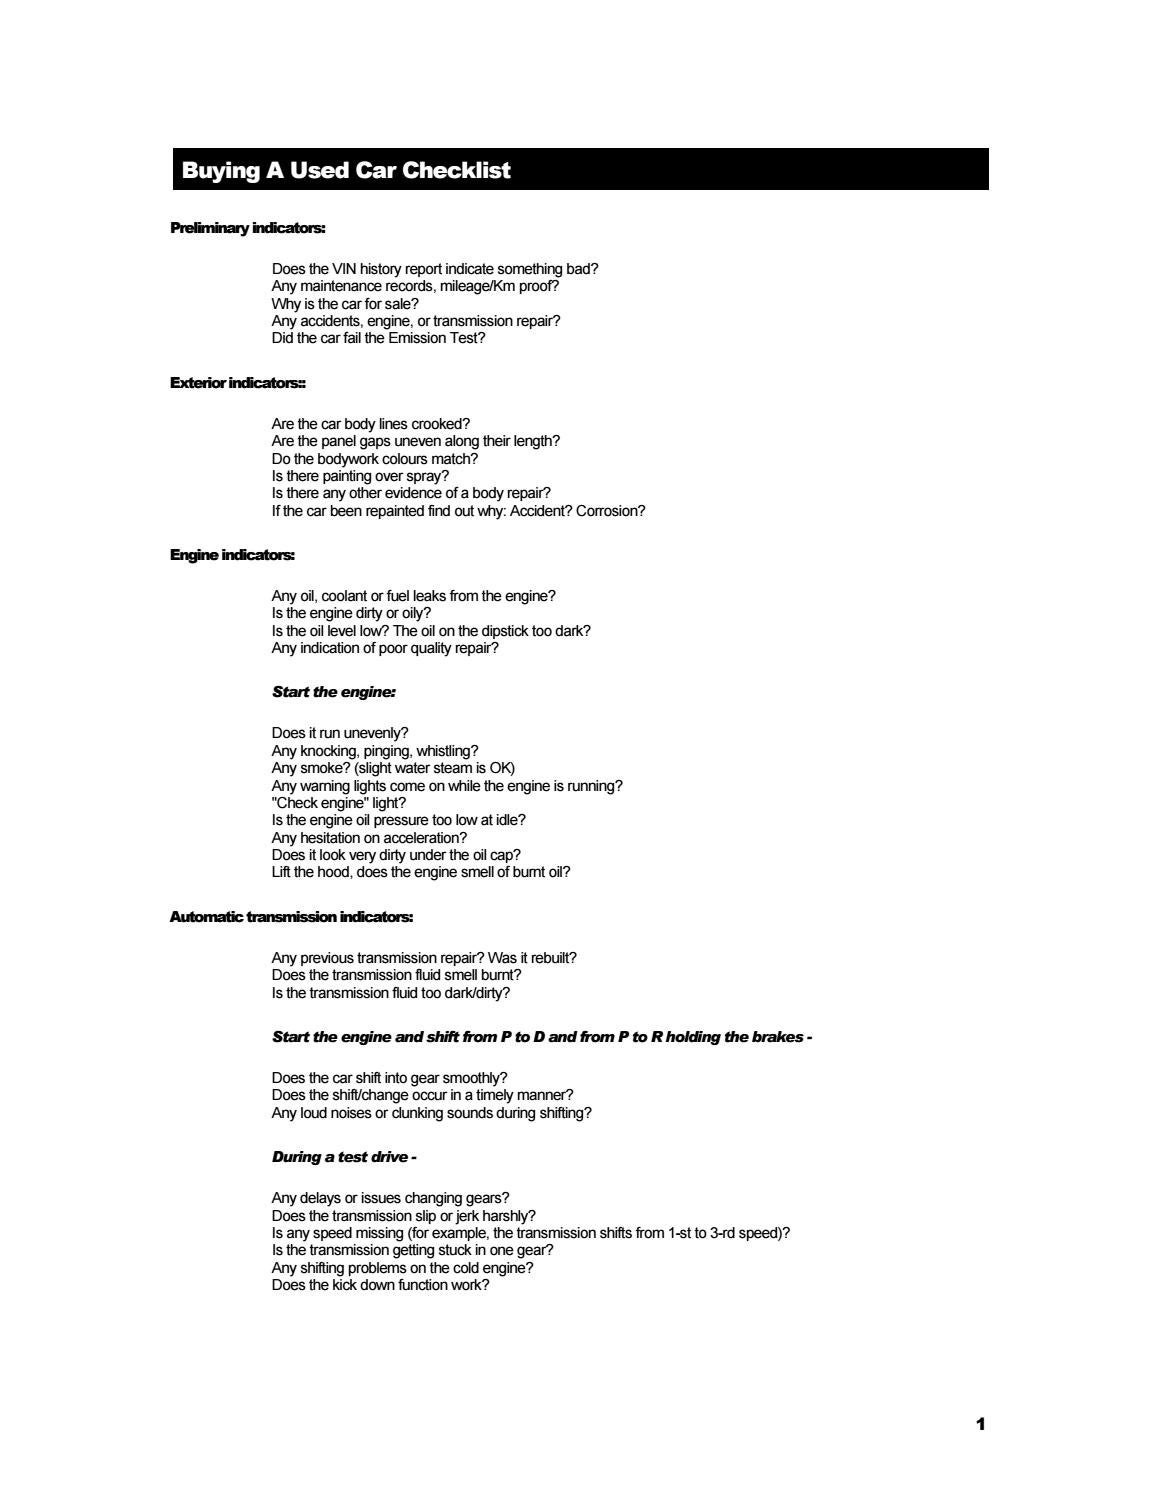 CHECKLIST] How to buy a used car by James Burchill - issuu